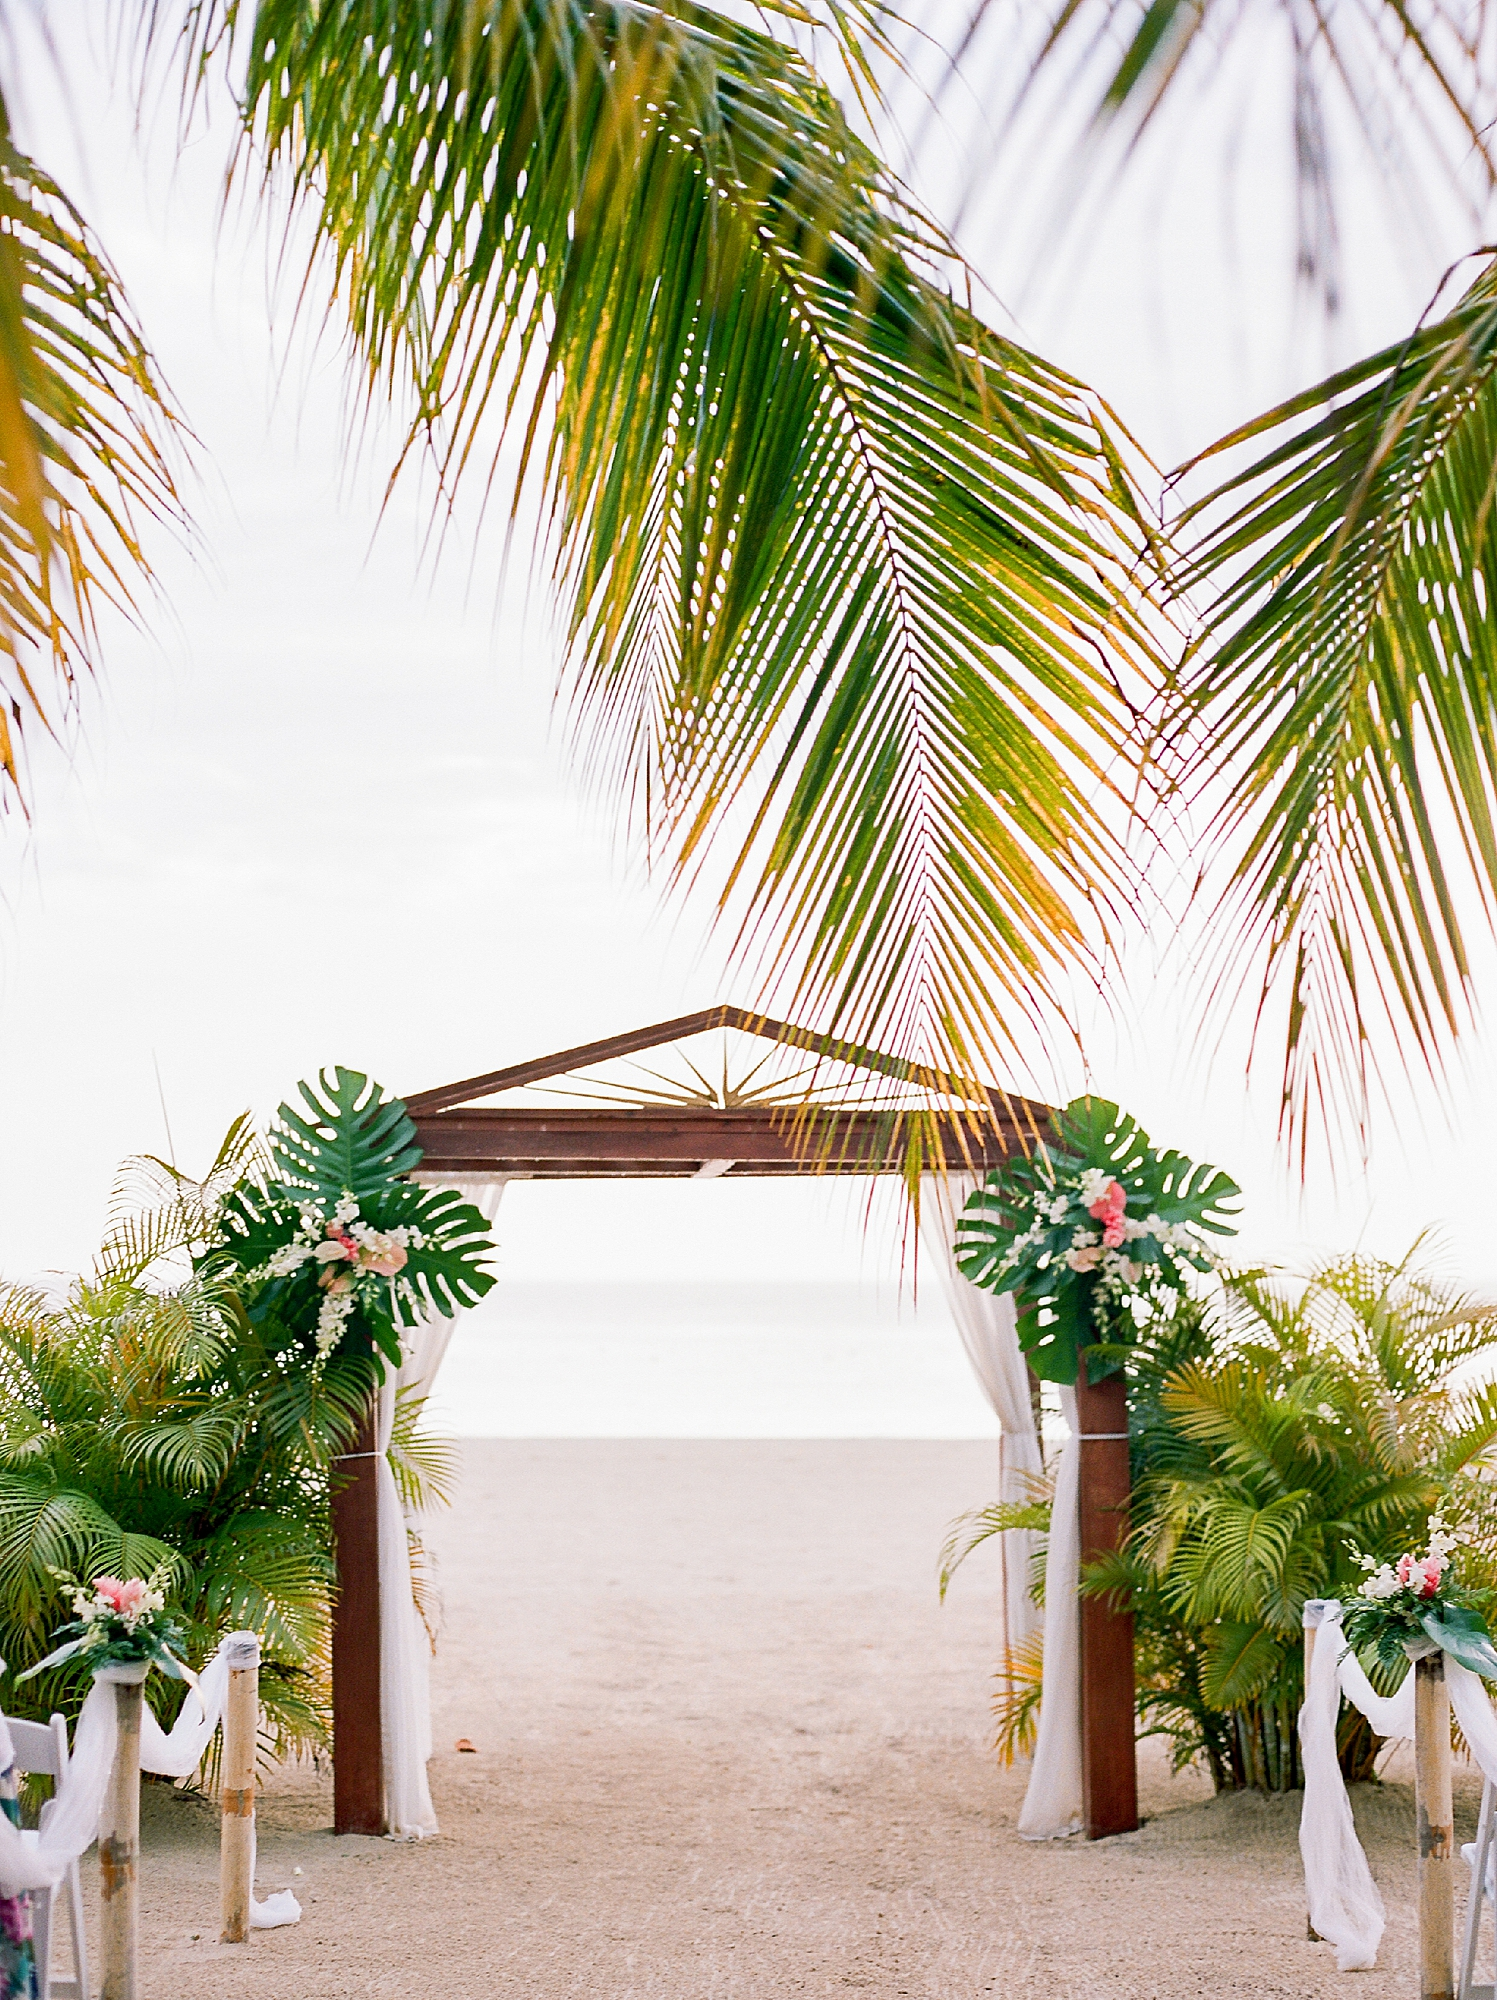 Negril Jamaica Film Destination Wedding Photography by Magdalena Studios 0025